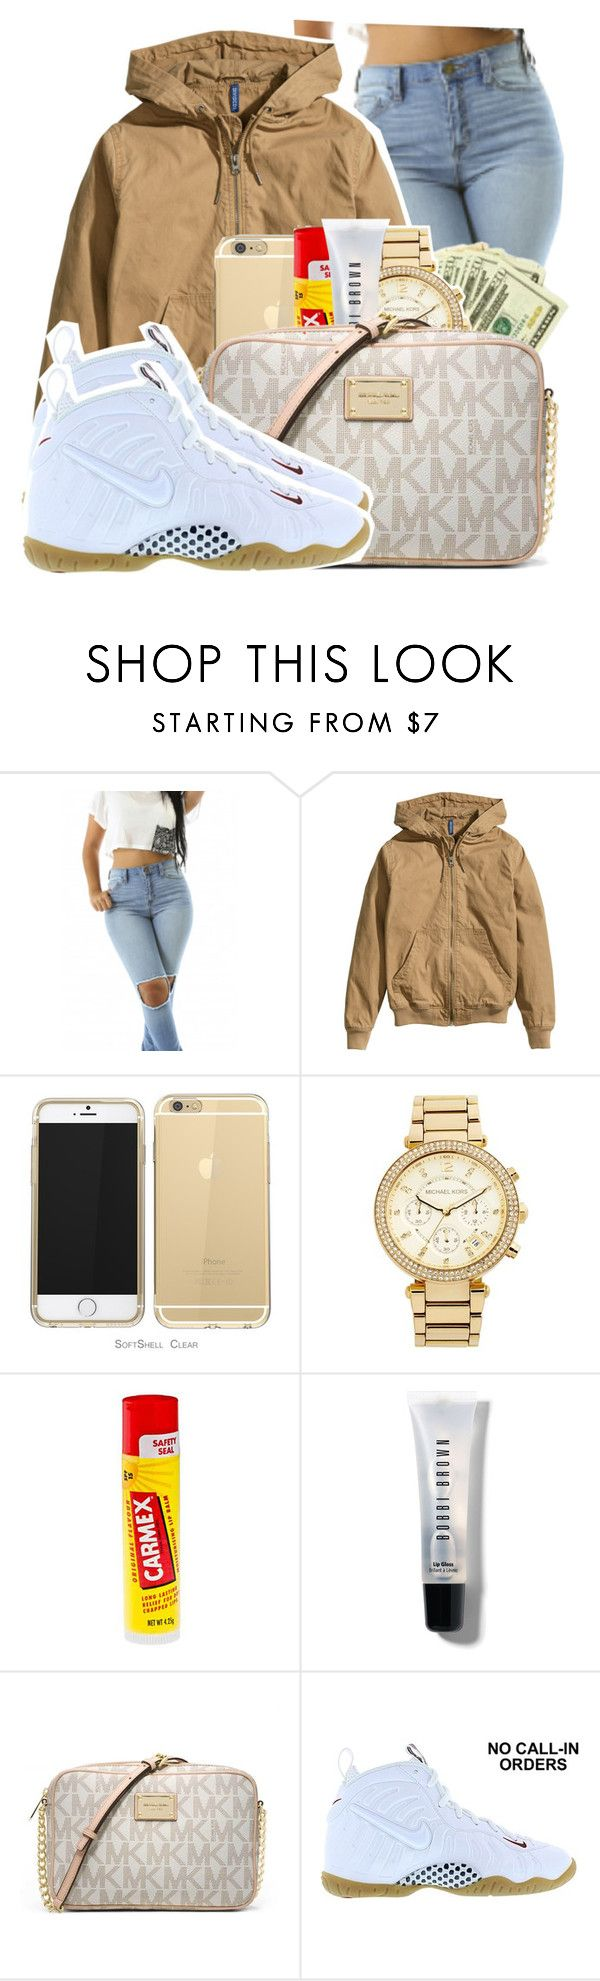 """""""Untitled #111"""" by amourr-dessi ❤ liked on Polyvore featuring H&M, MICHAEL Michael Kors, Carmex, Bobbi Brown Cosmetics, Michael Kors and NIKE"""